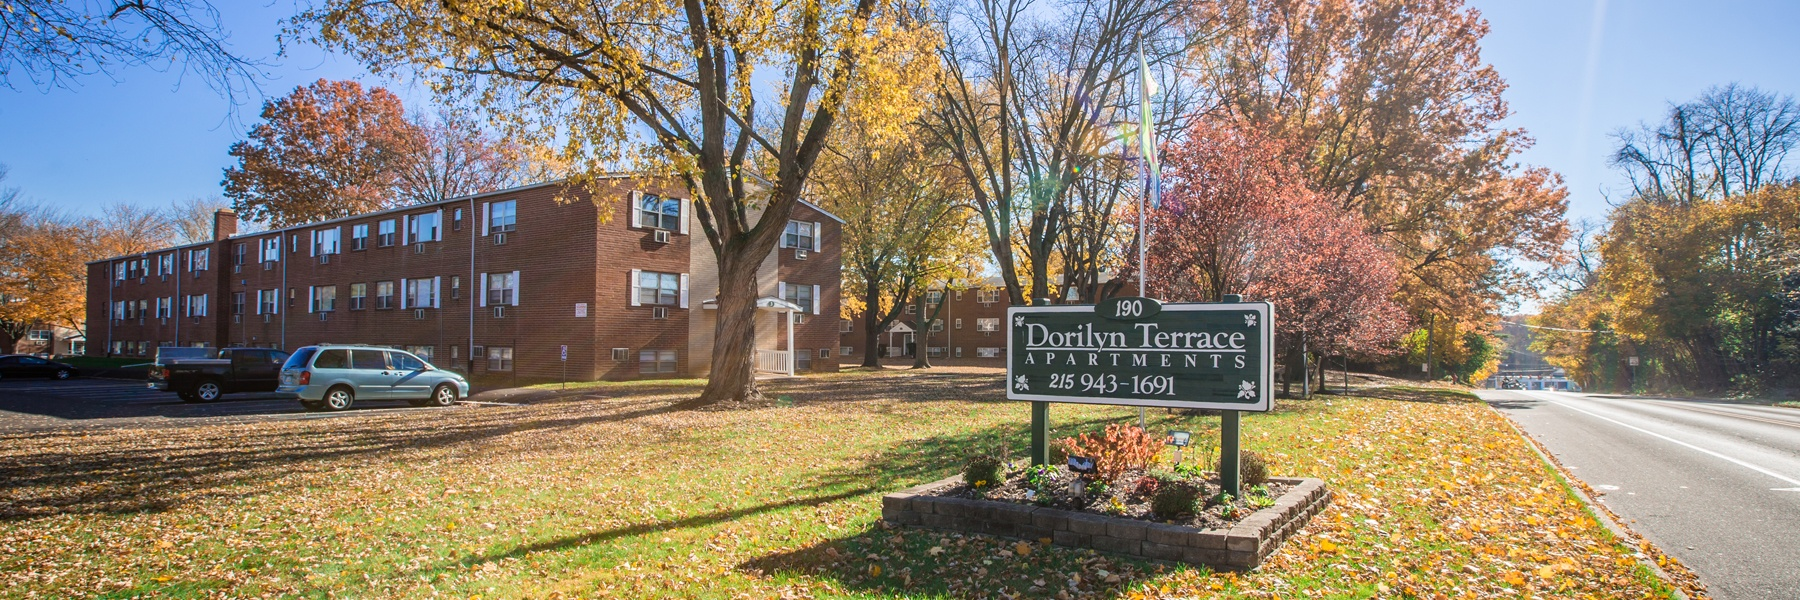 Dorilyn Terrace Apartments For Rent in Langhorne, PA Welcome